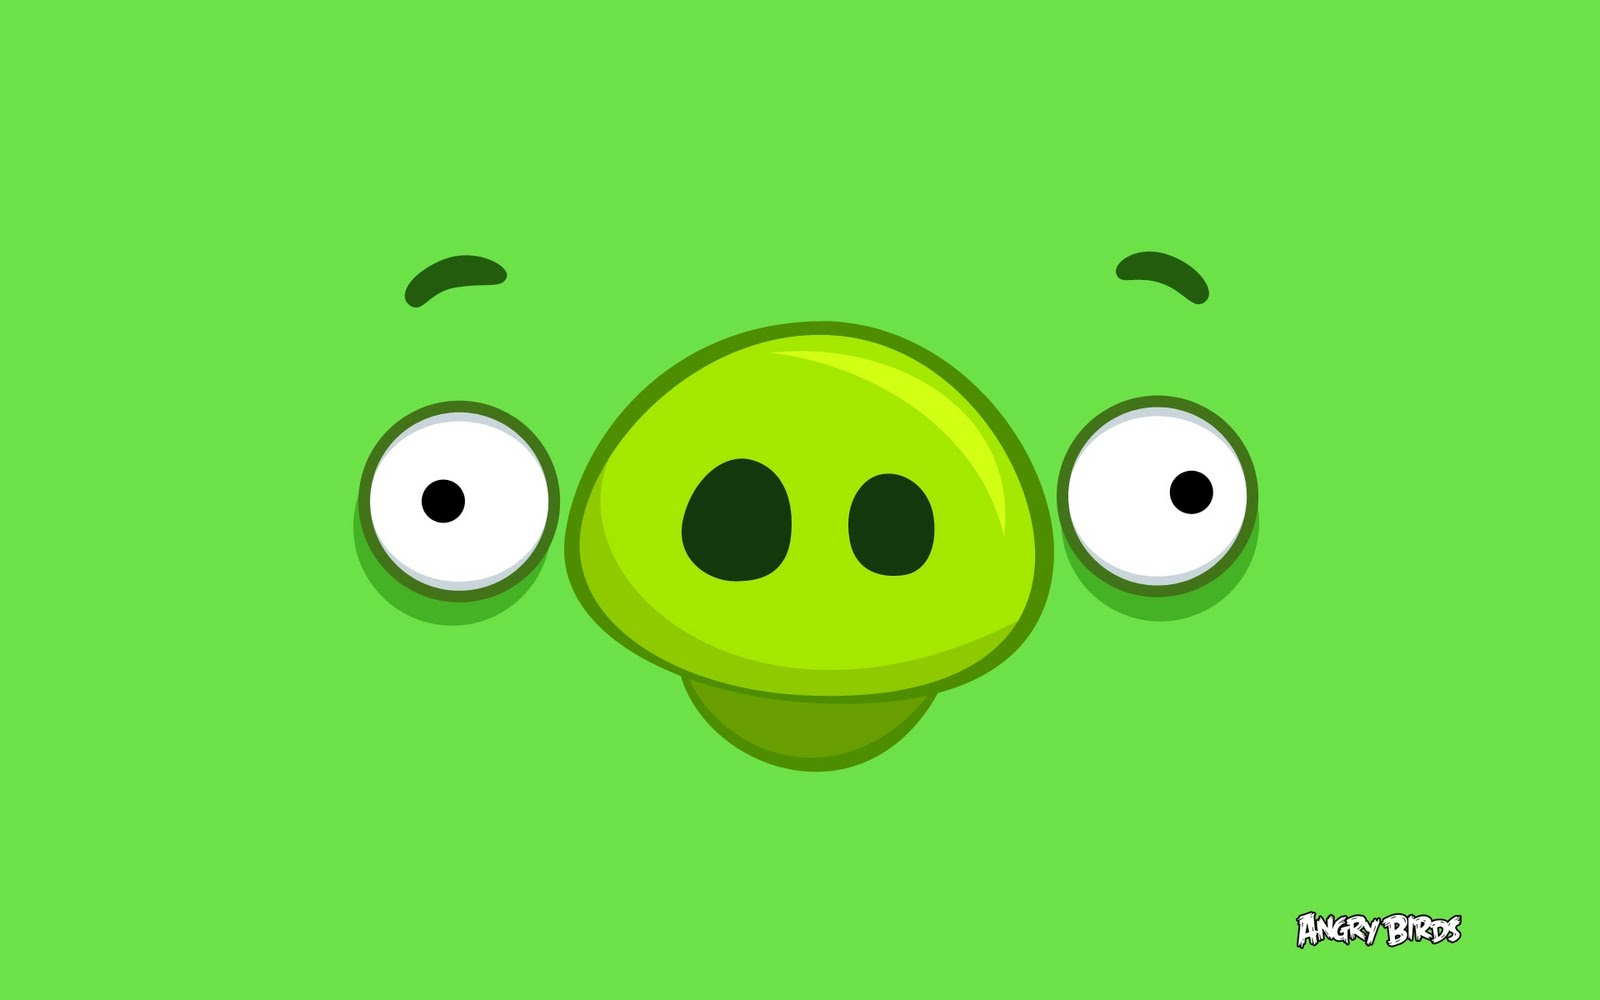 angry birds wallpaper 10 - photo #29